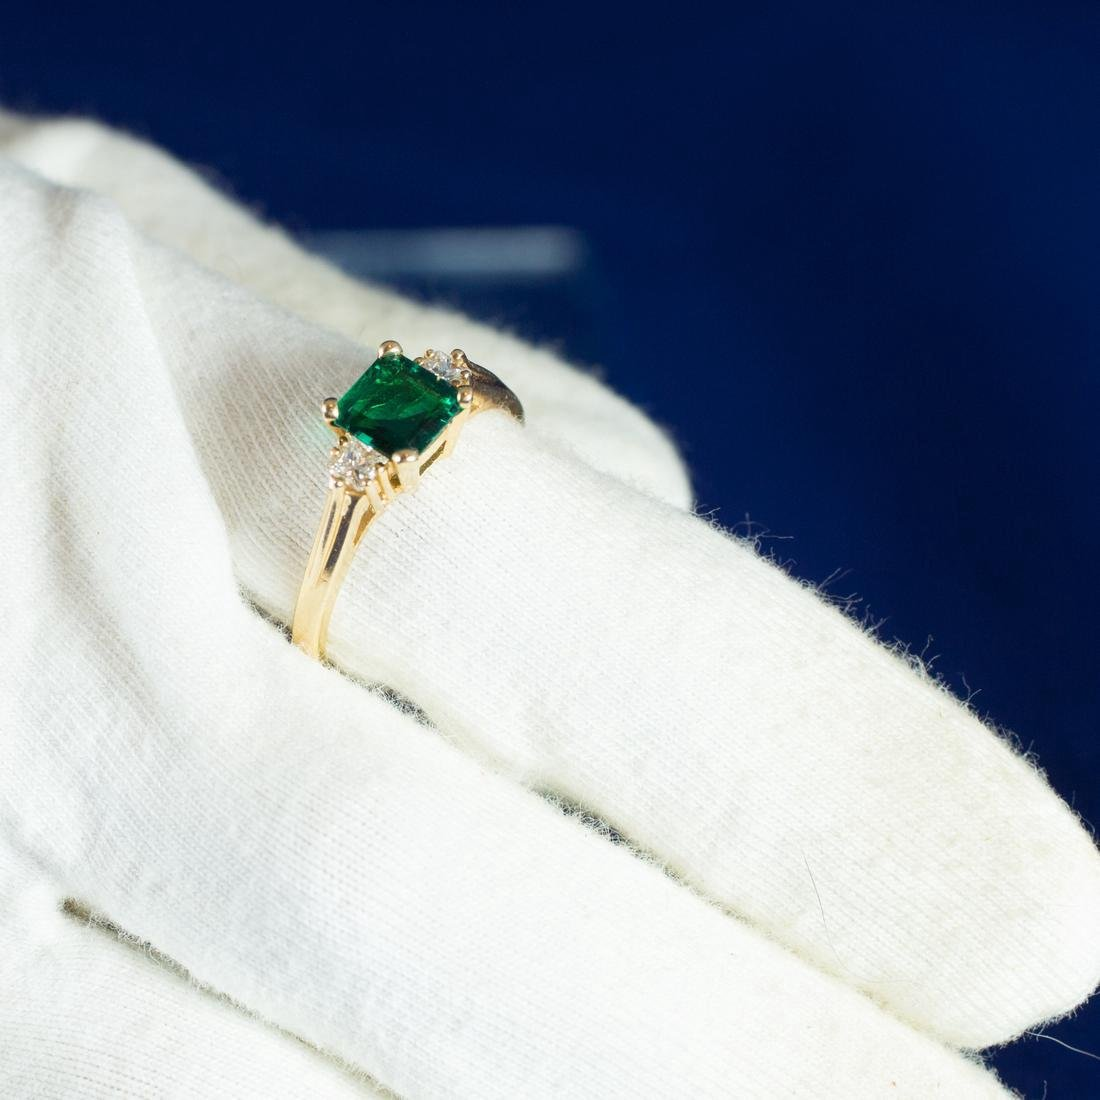 Vintage 14k Gold Emerald and Diamond Ring